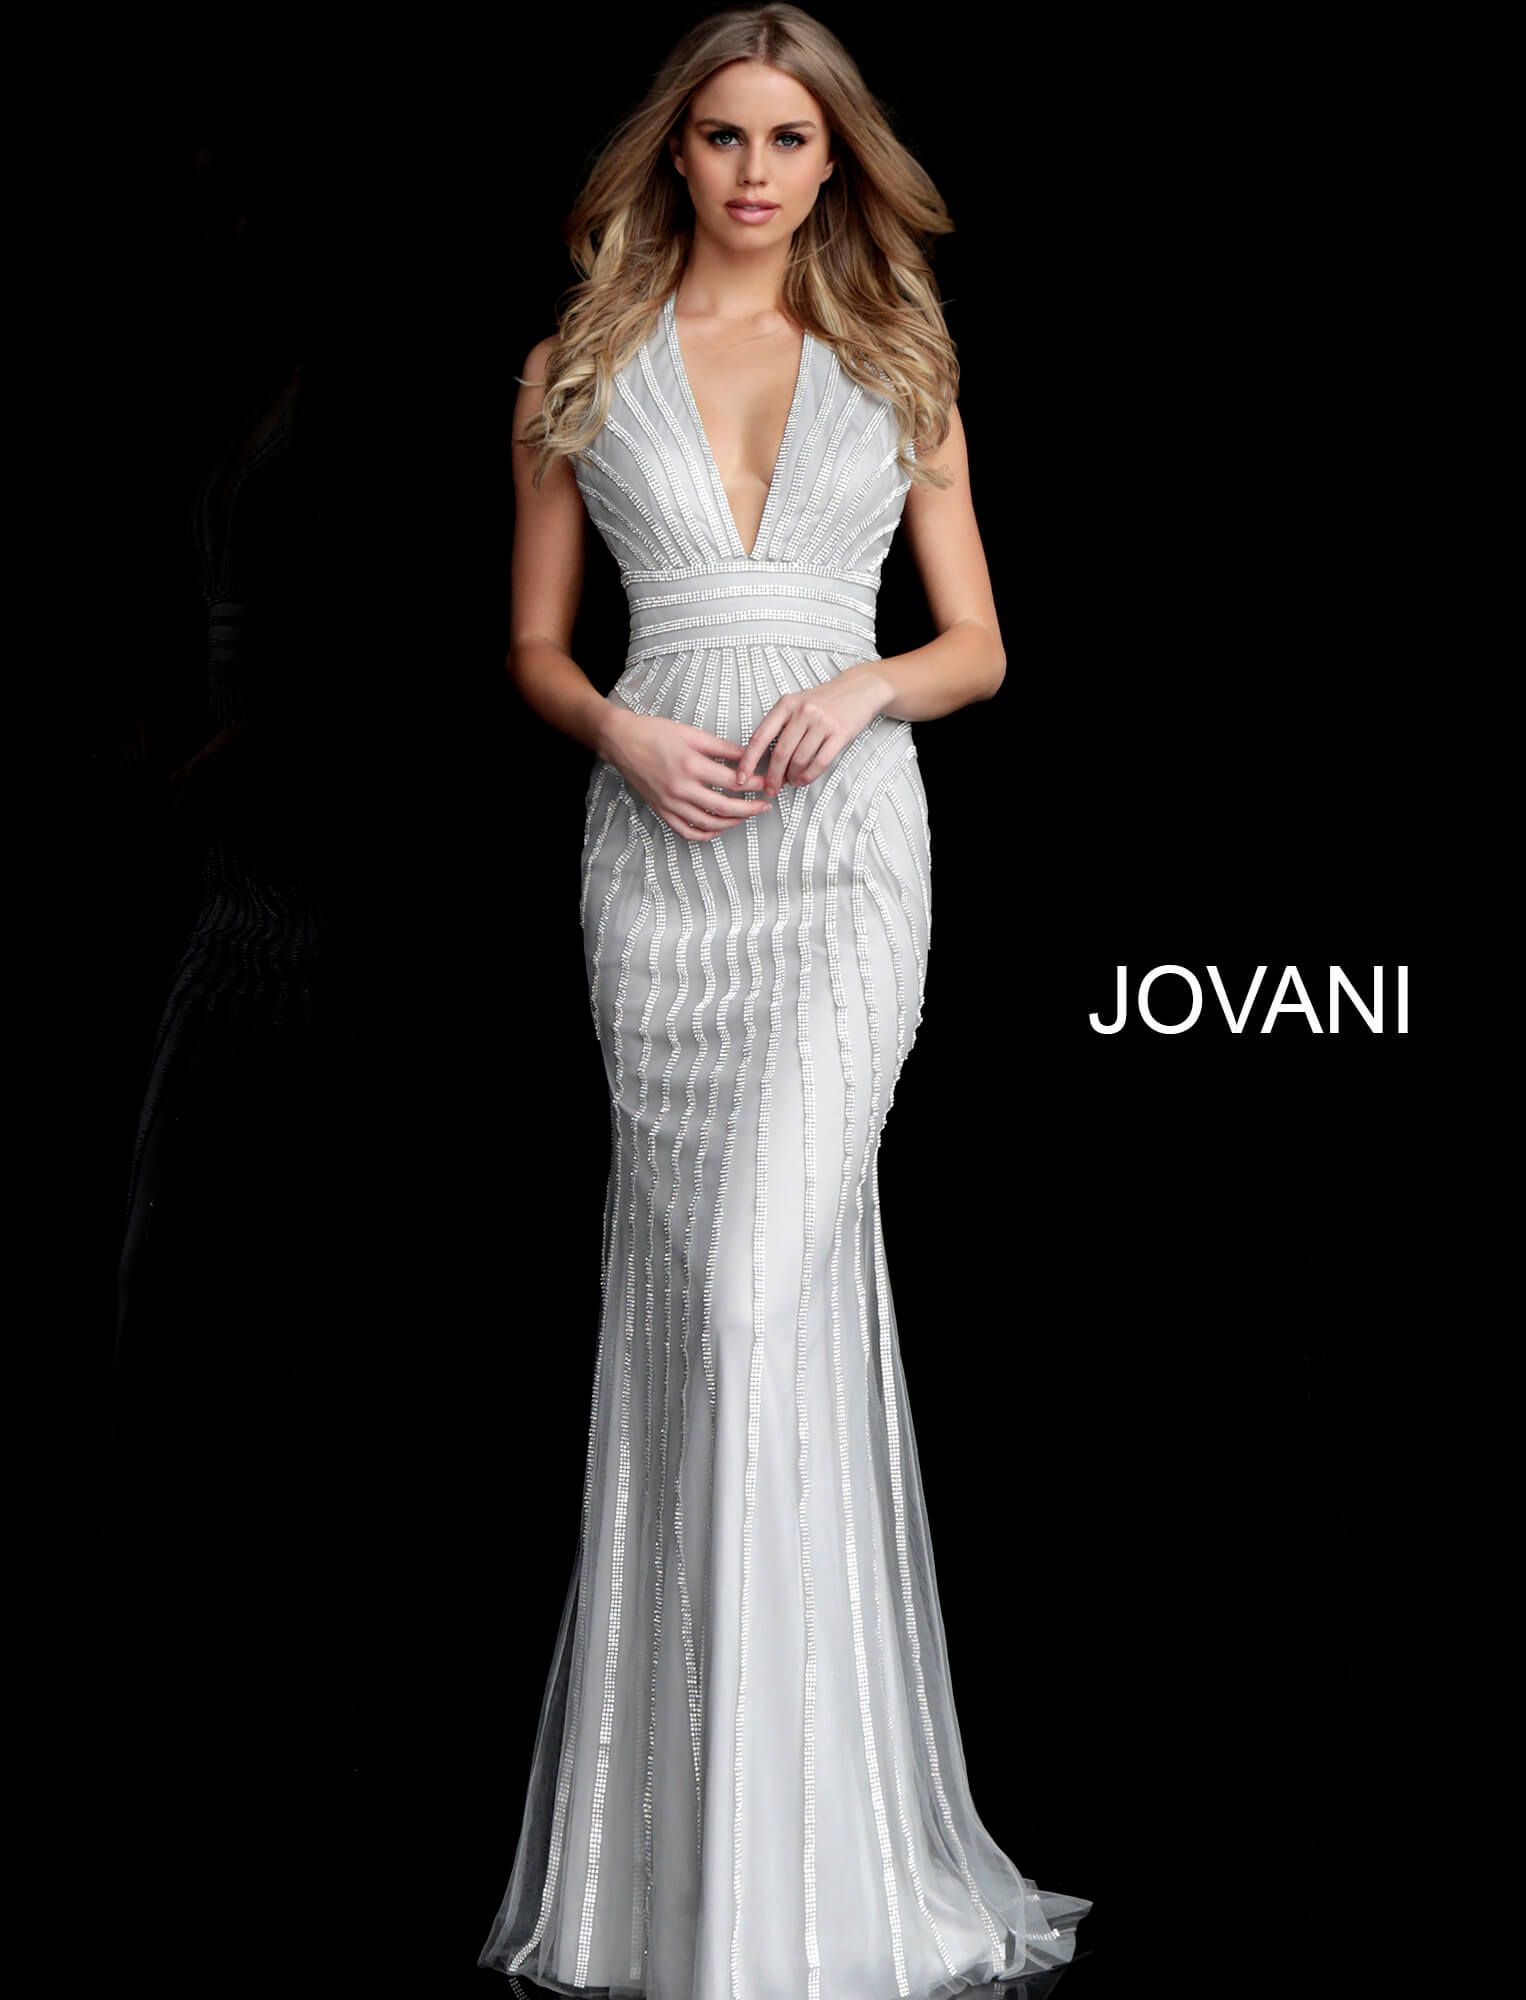 6b843a6f9e68 This Jovani 62292 silver long party dress features a slim-flare silhouette  in tulle over